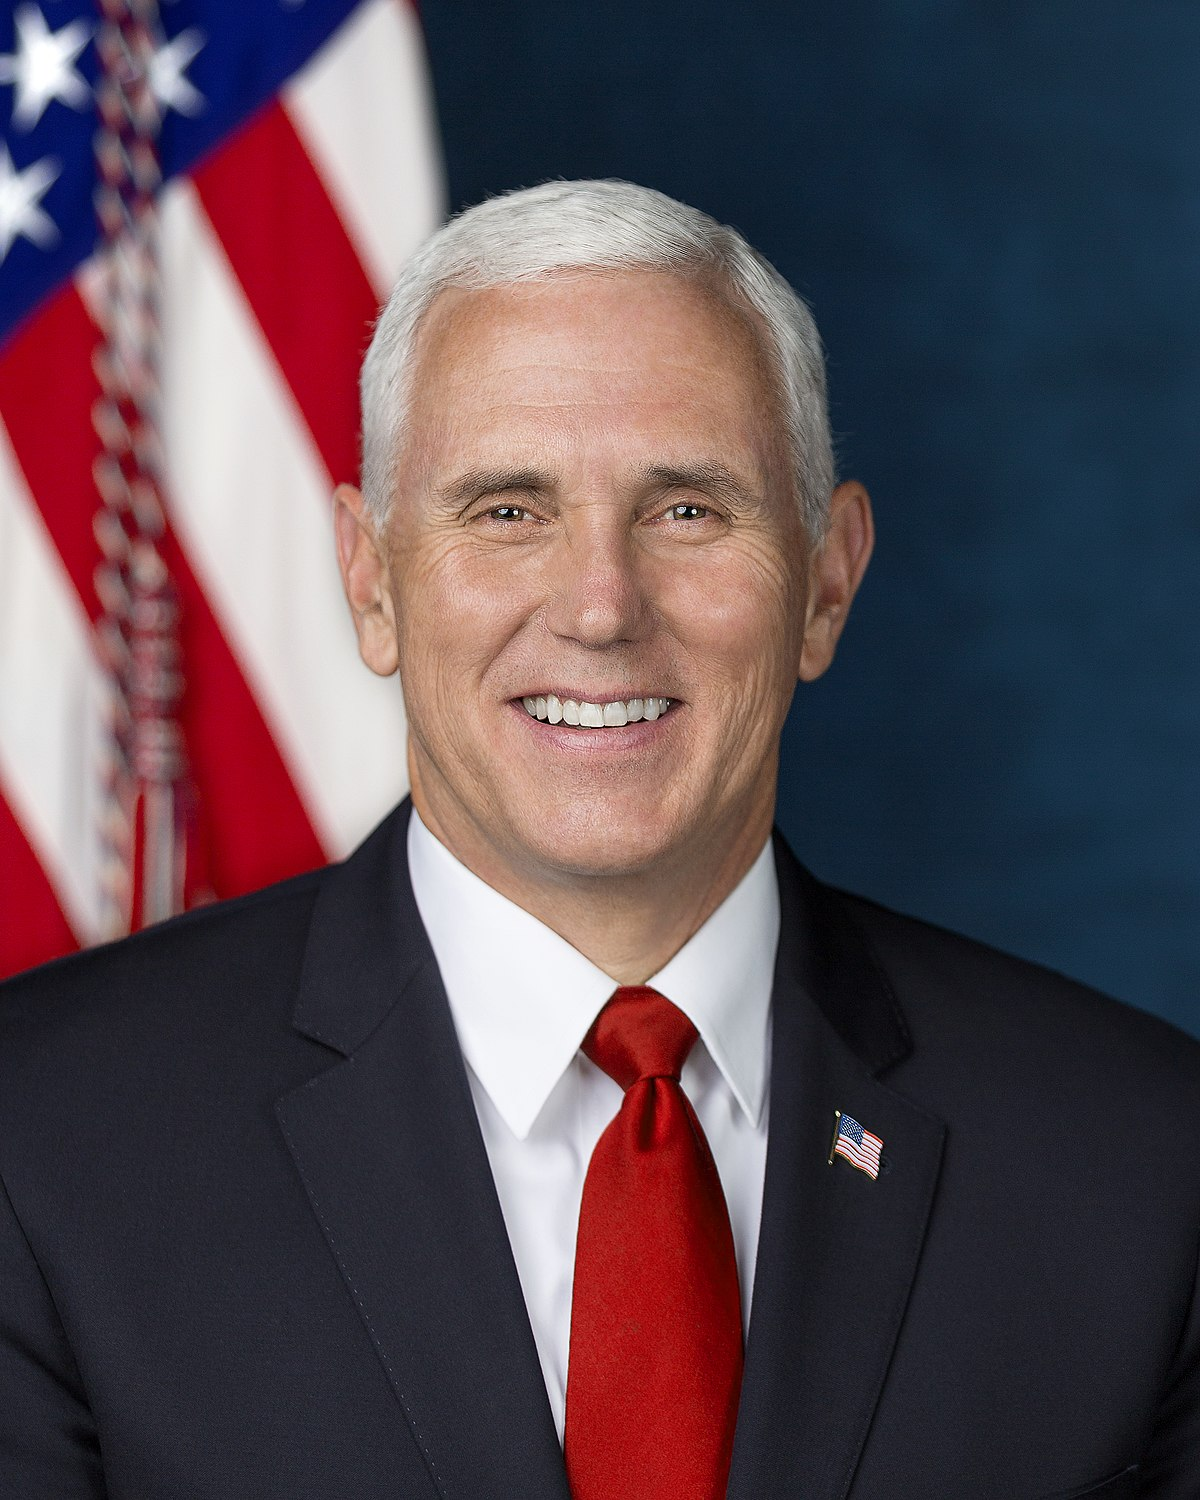 bc0e2aeba63 Mike Pence - Wikipedia